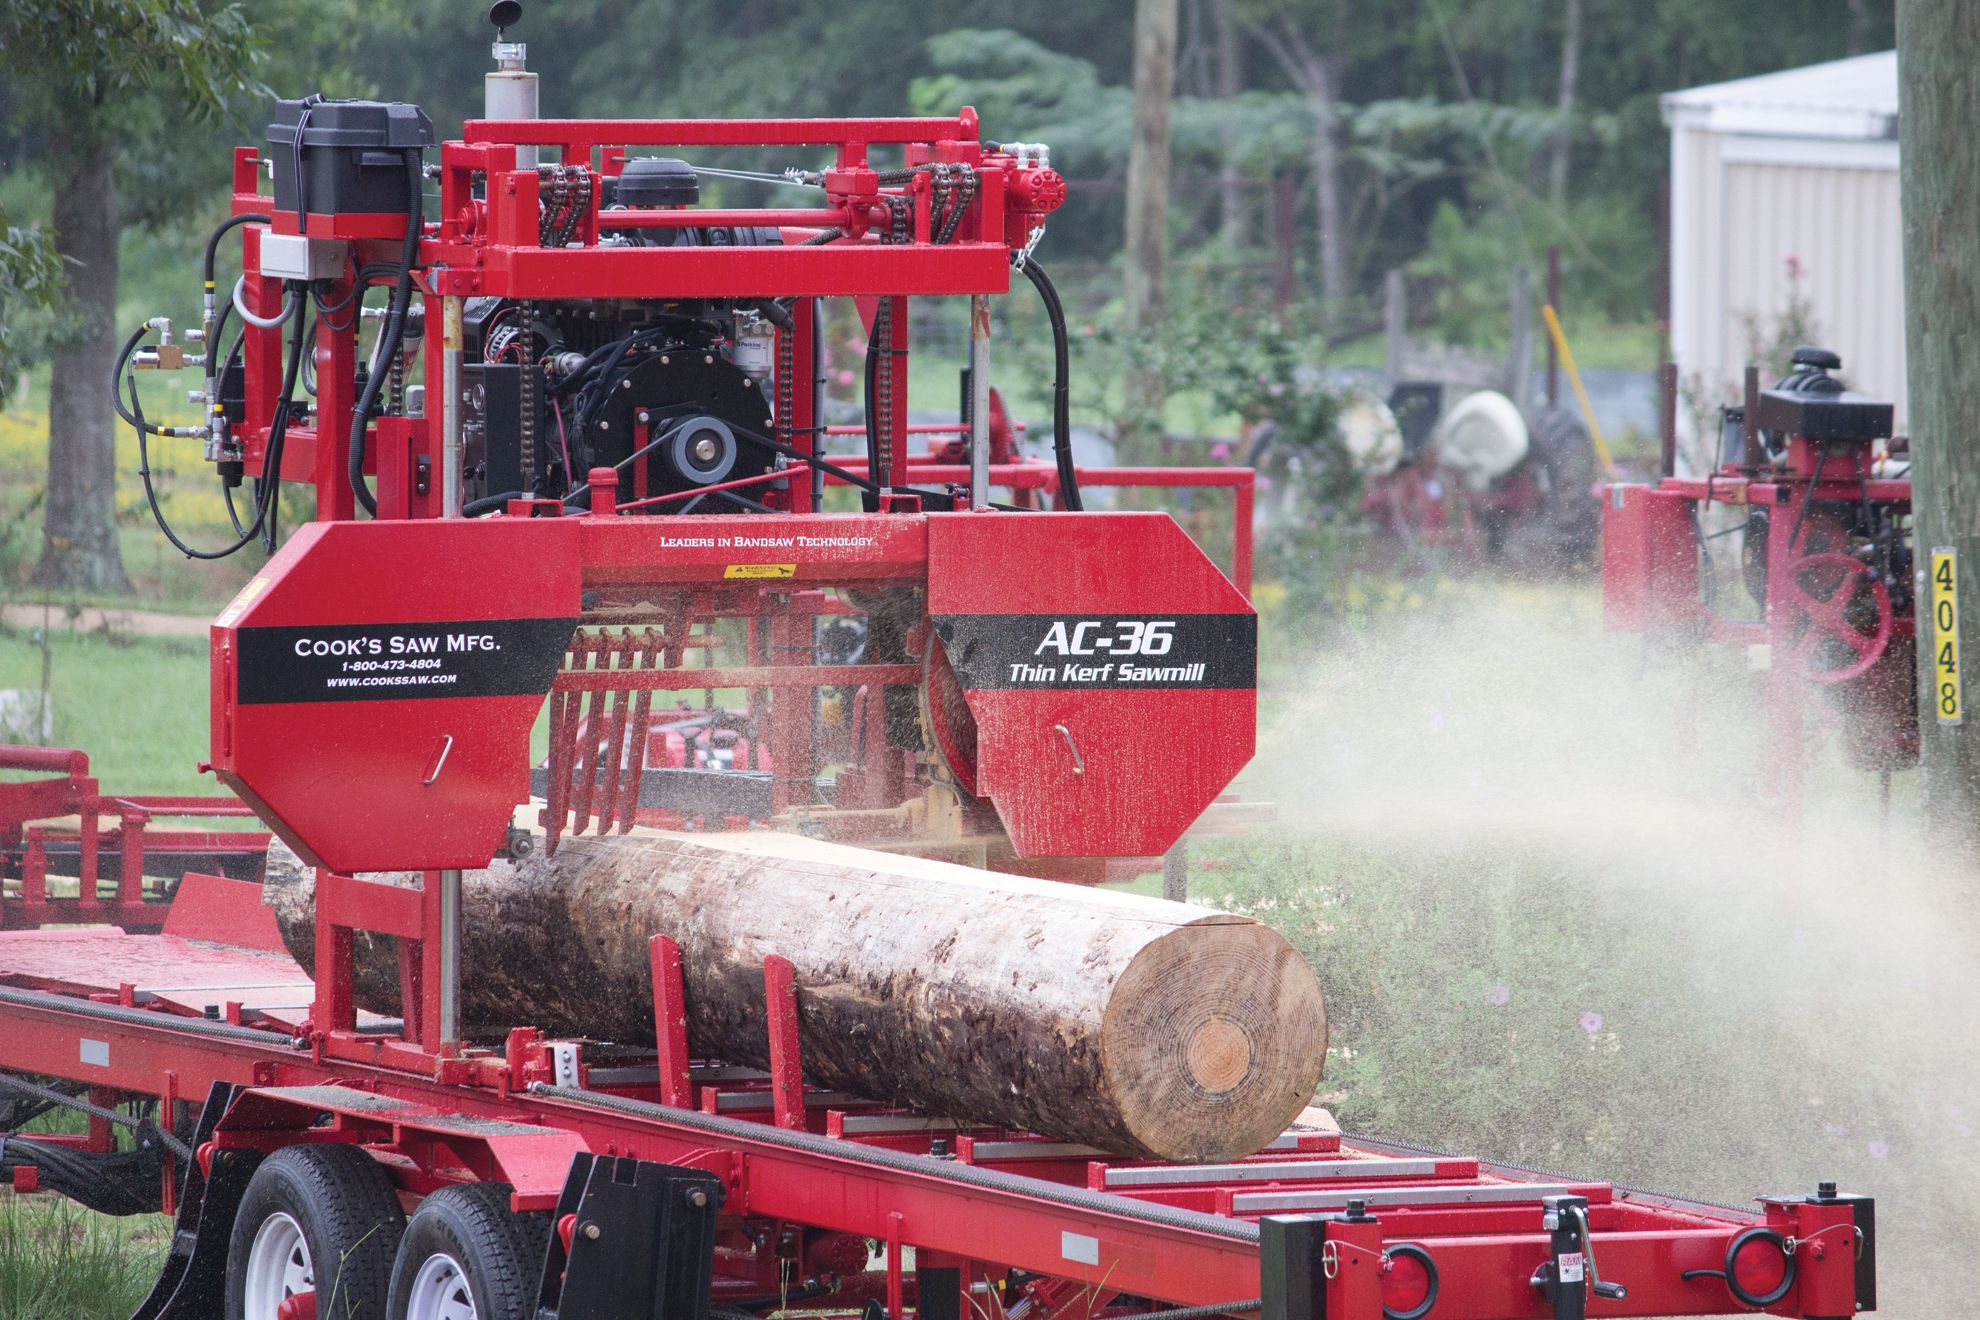 Cooks AC36 portable sawmill in action | Portable Sawmill Equipment